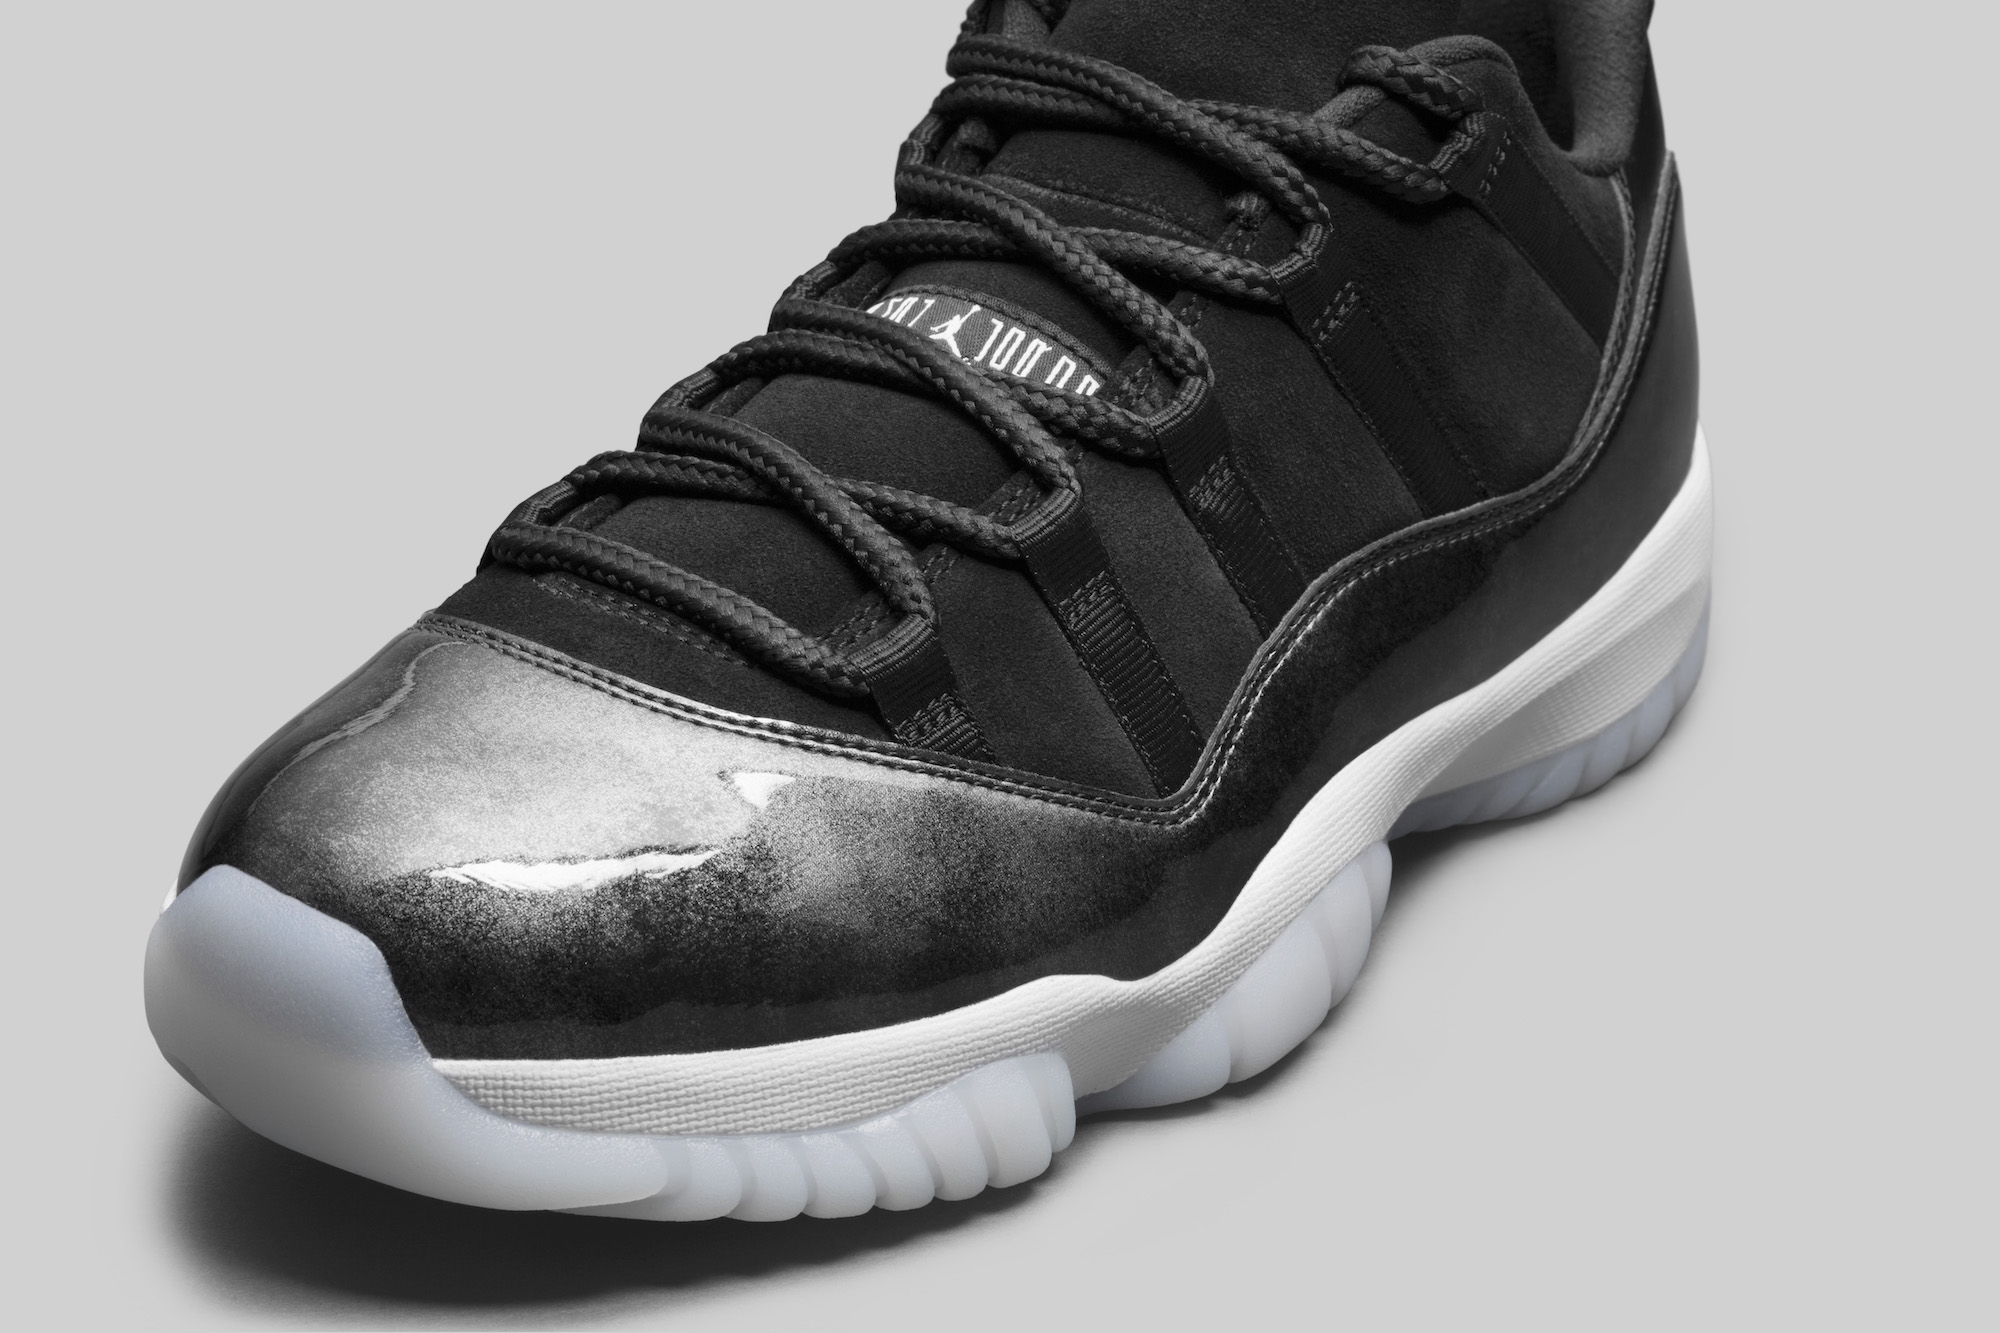 JB Unveils an Air Jordan XI Retro Low in Black Suede for Summer - WearTesters